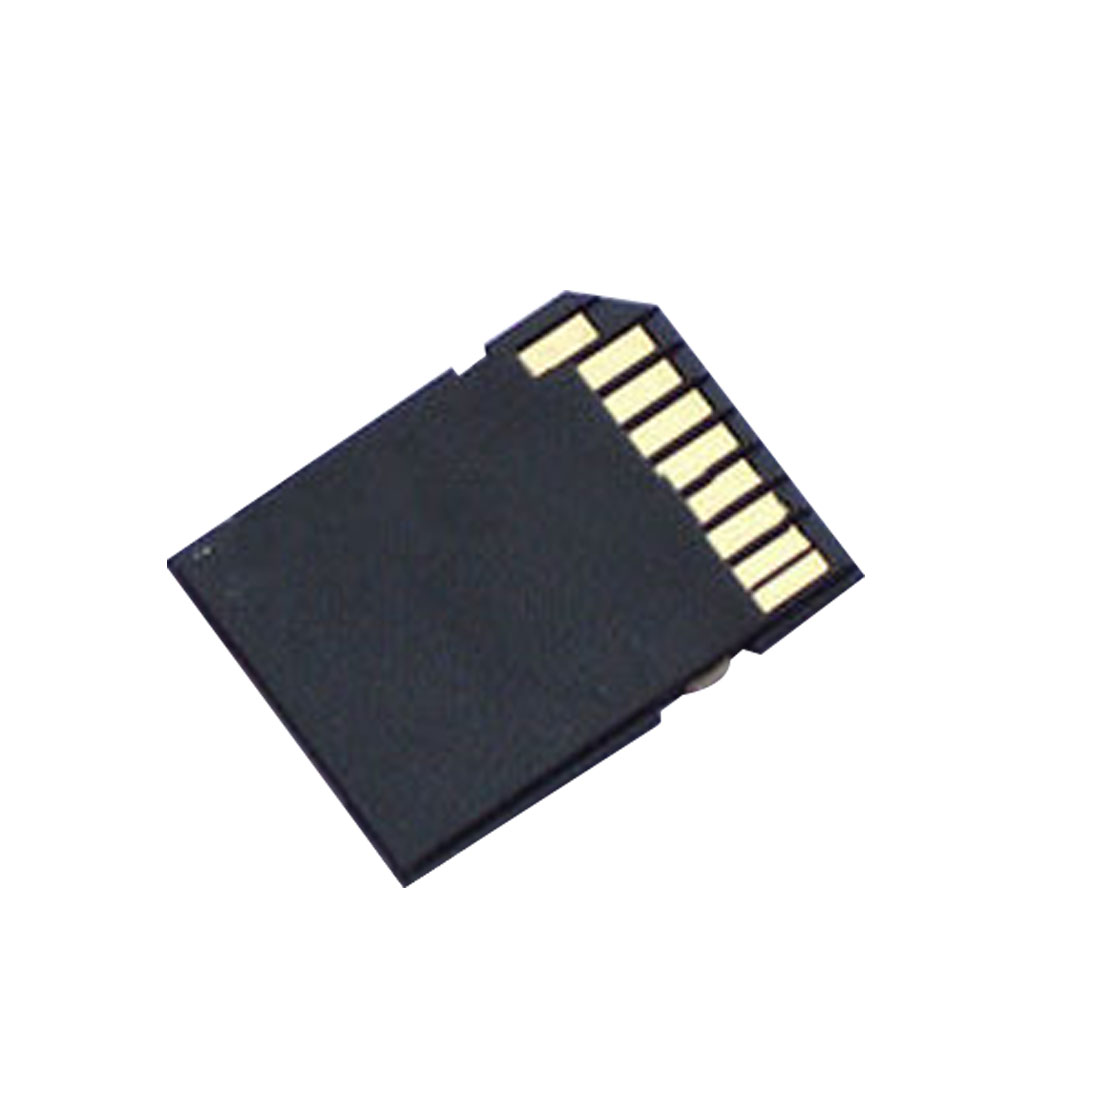 how to put sd card into adapter